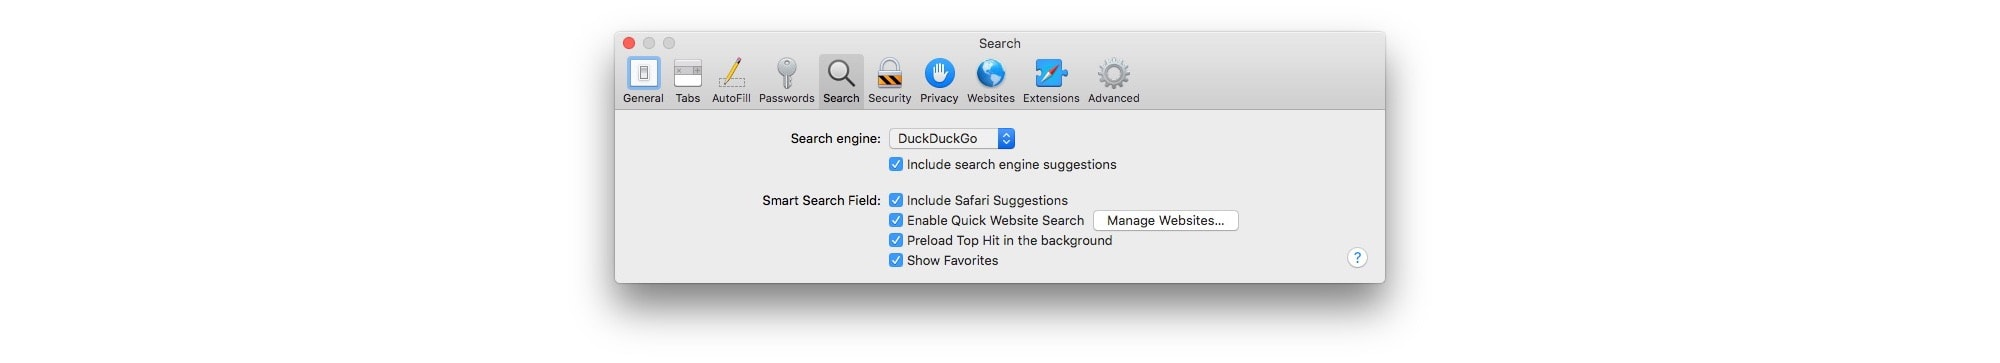 Here's where you can set DuckDuckGo as your default search engine for Safari on Mac.